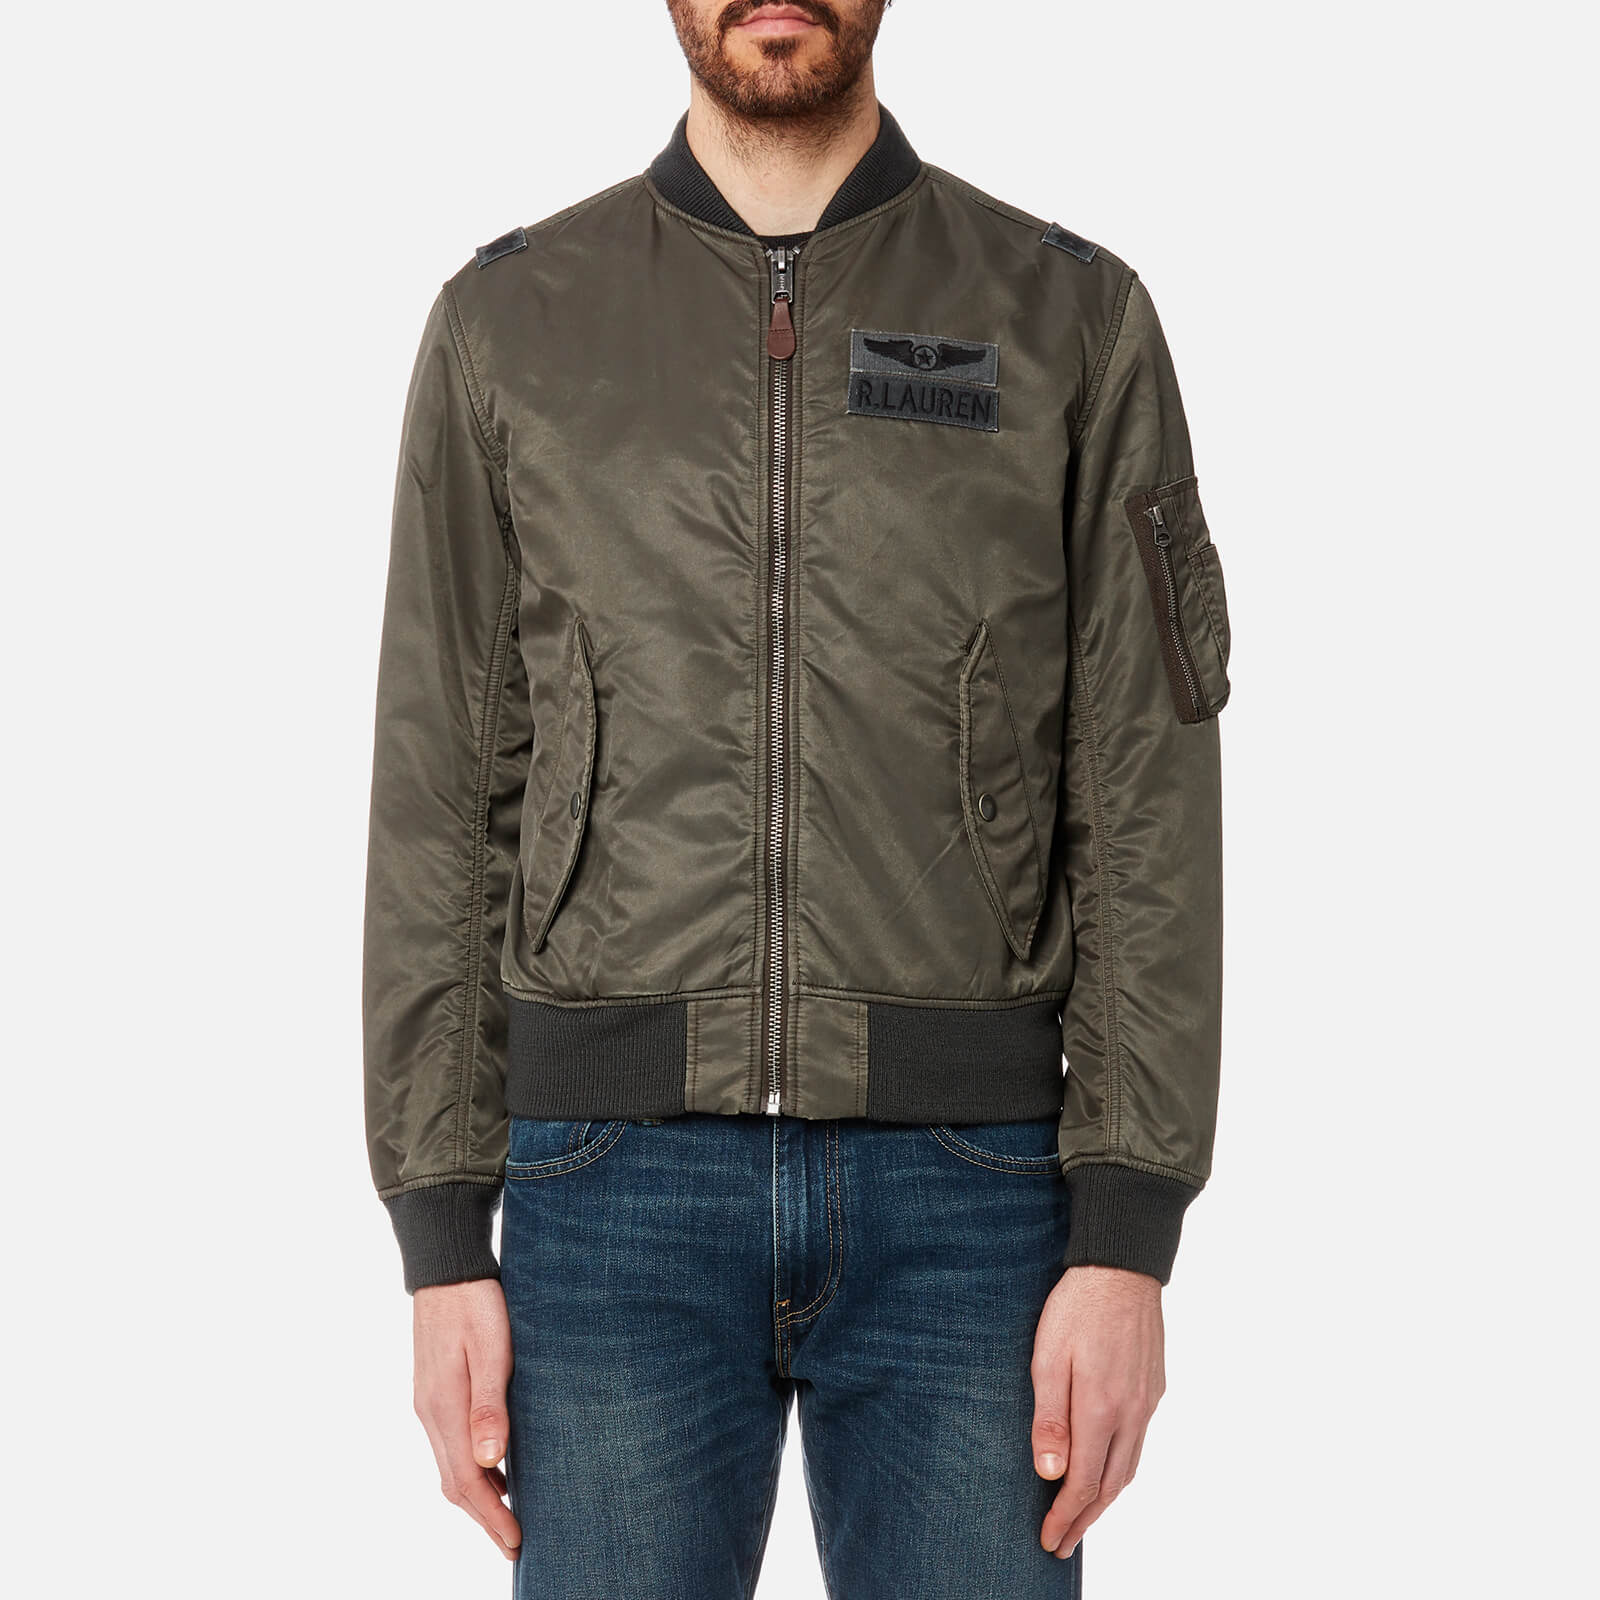 a897f23477 Polo Ralph Lauren Men s Nylon Bomber Jacket - Olive - Free UK Delivery over  £50